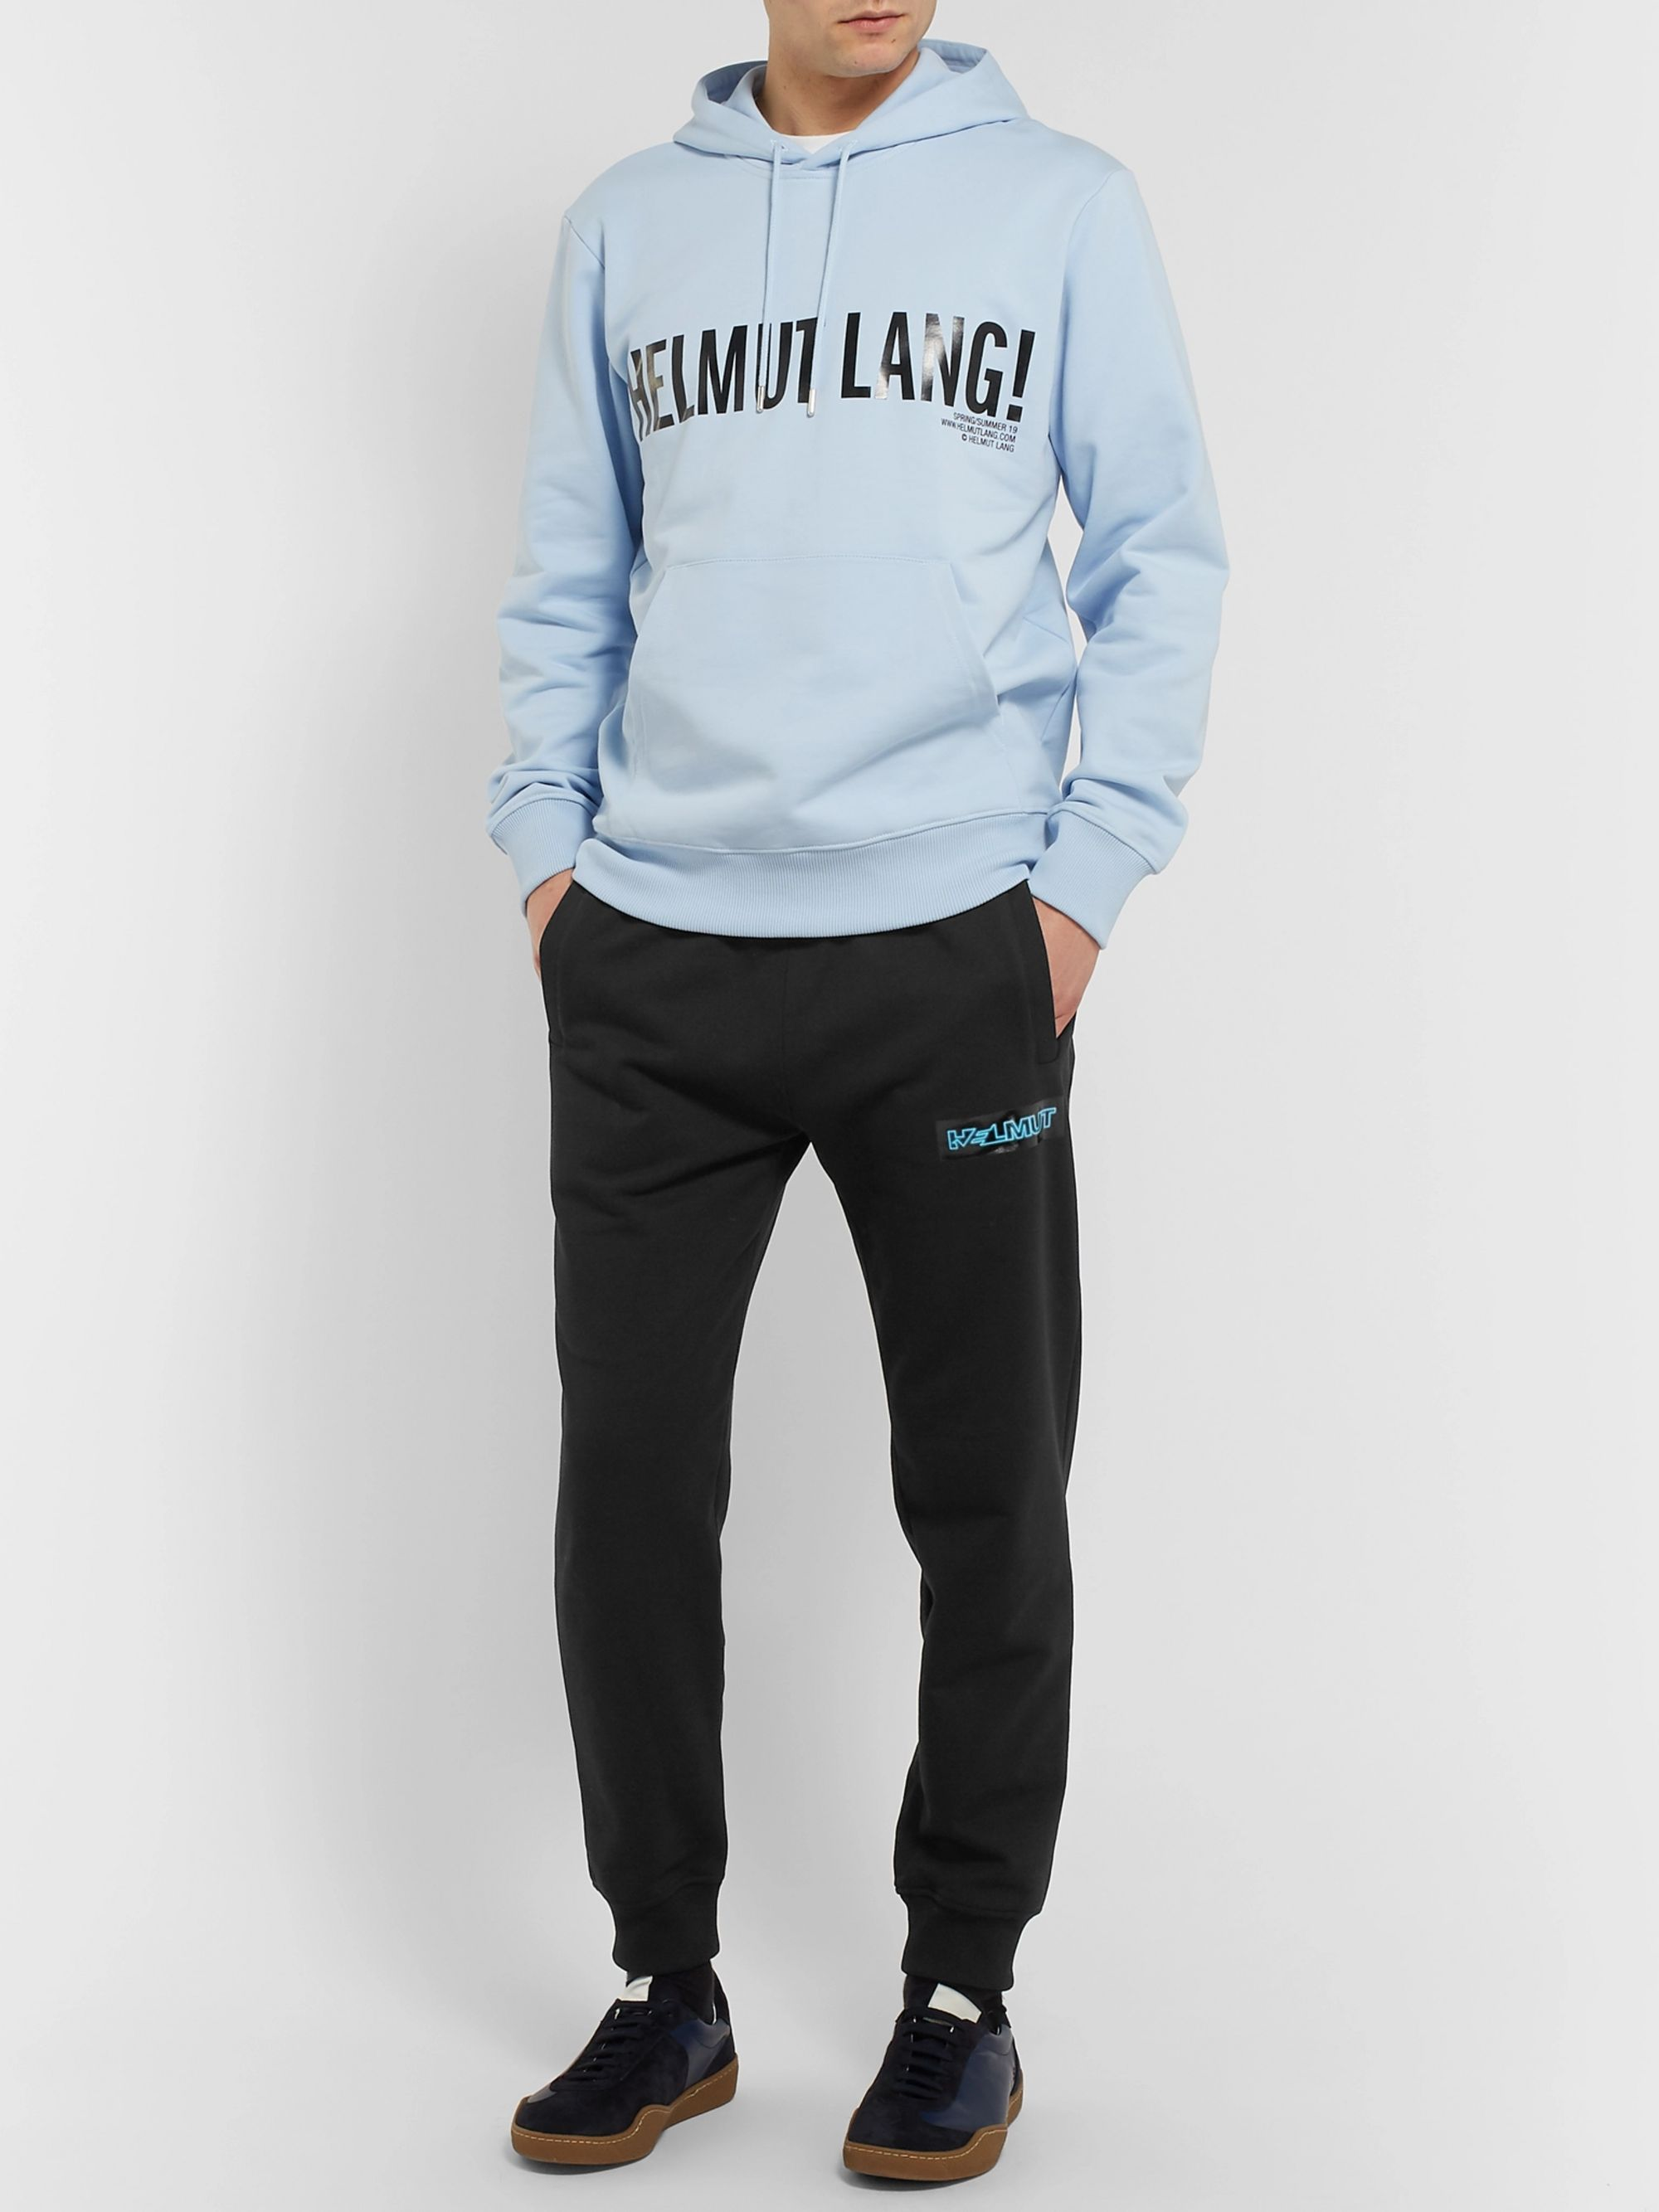 Helmut Lang Slim-Fit Tapered Logo-Print Cotton-Jersey Sweatpants